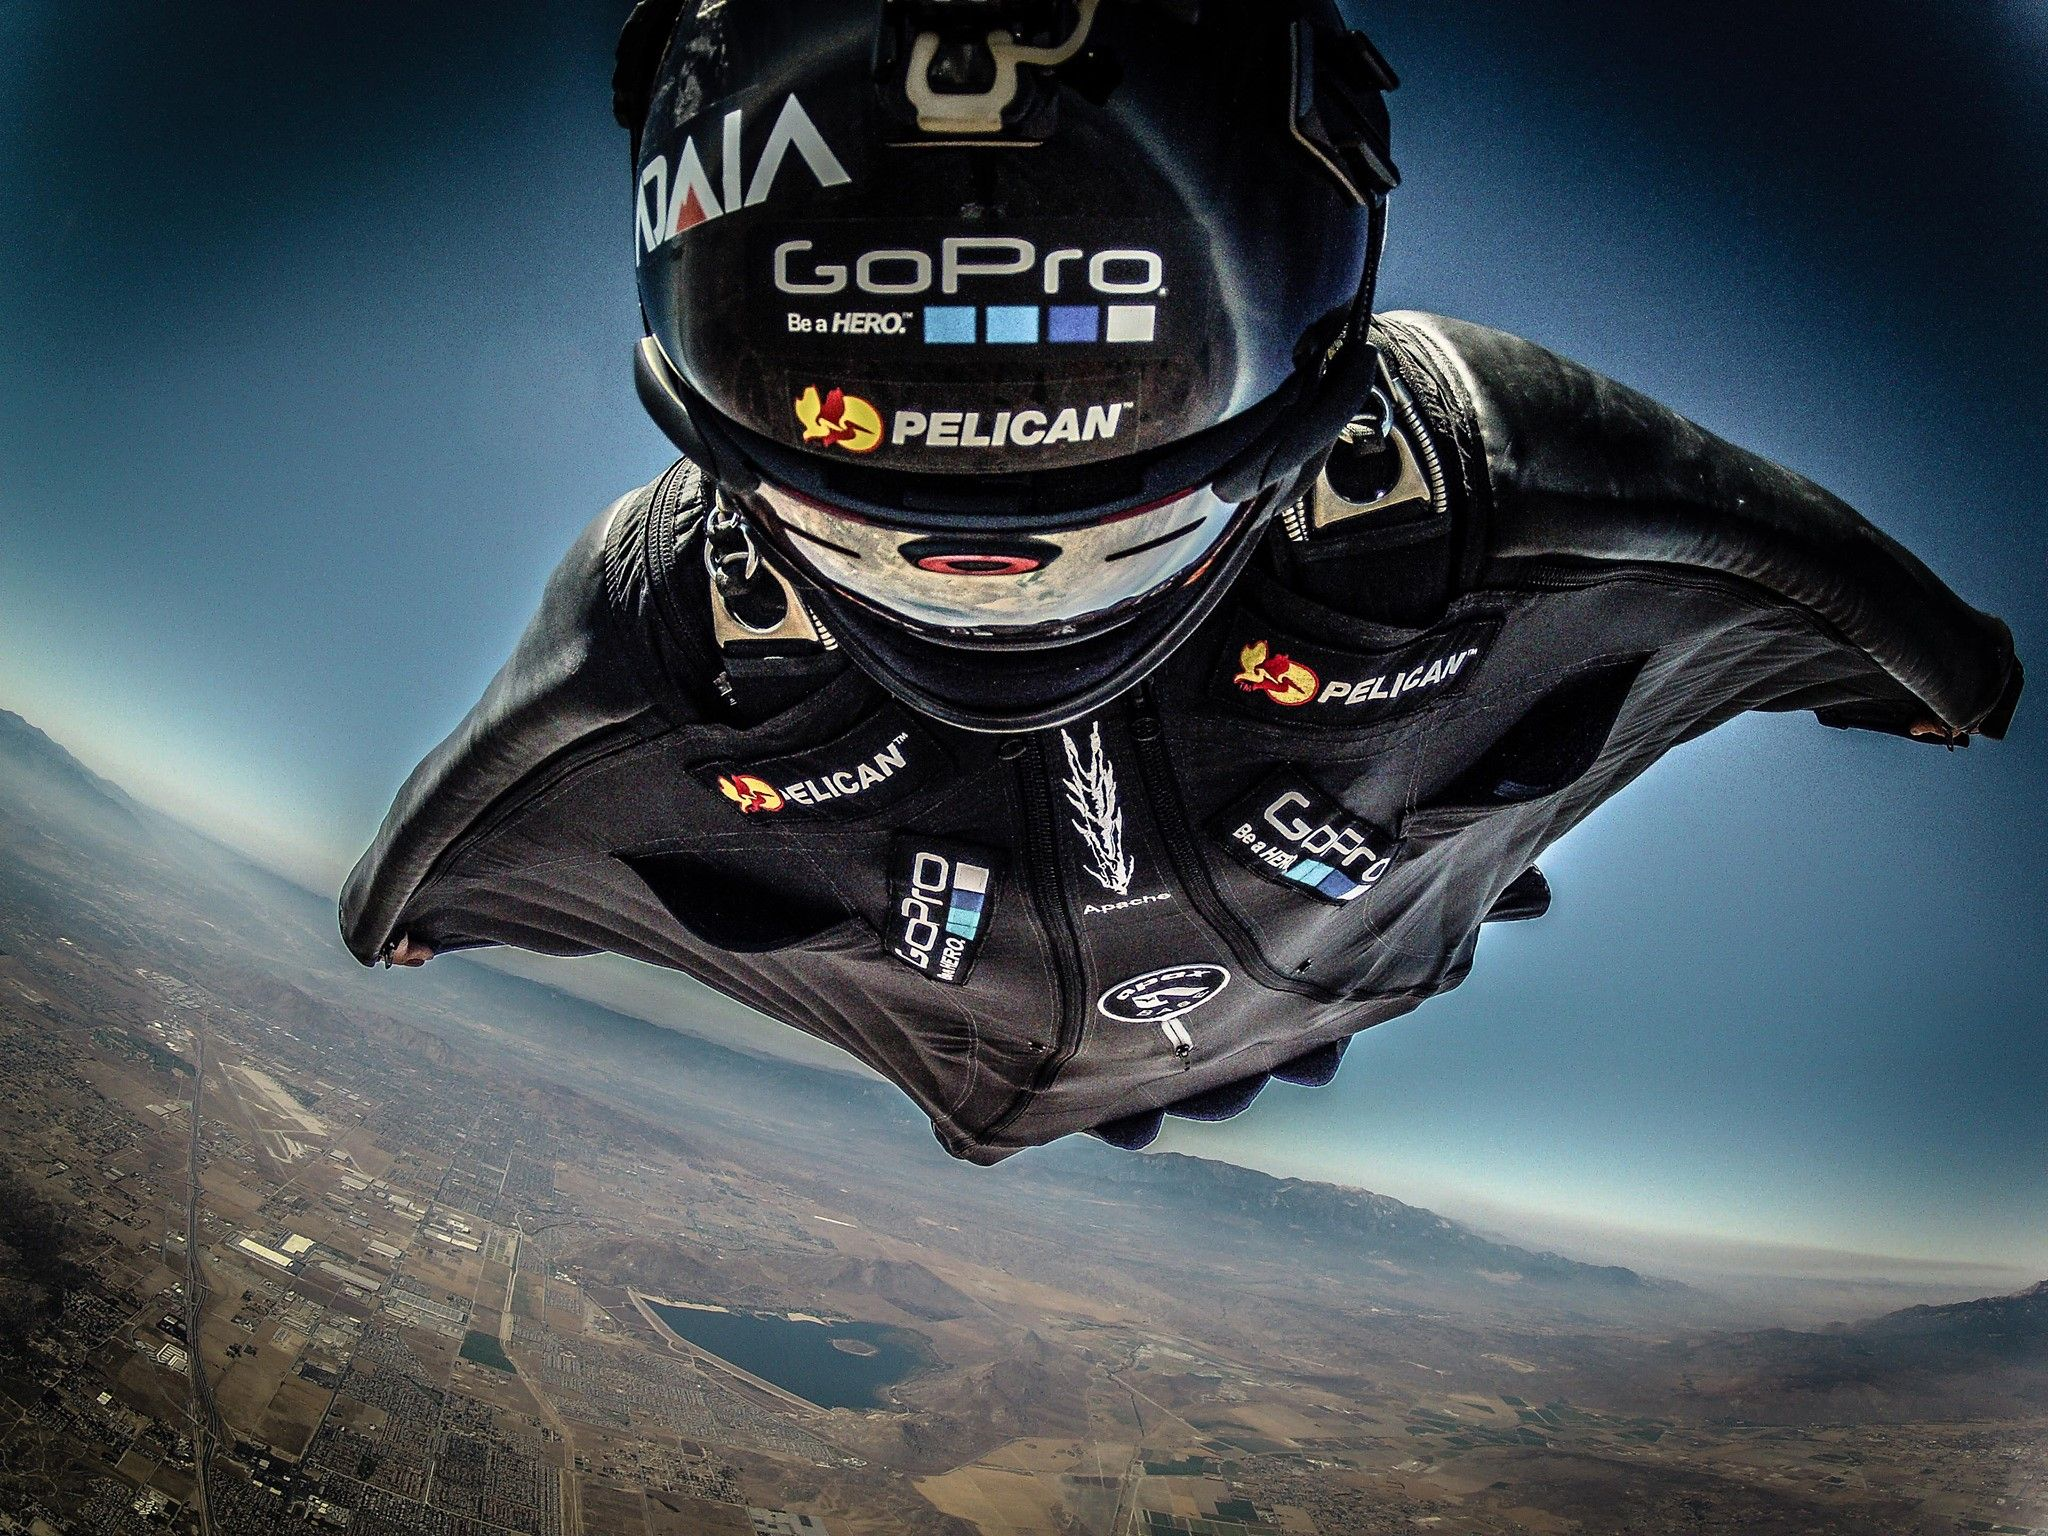 445c38576e9 Wing suit flying -  wingsuit